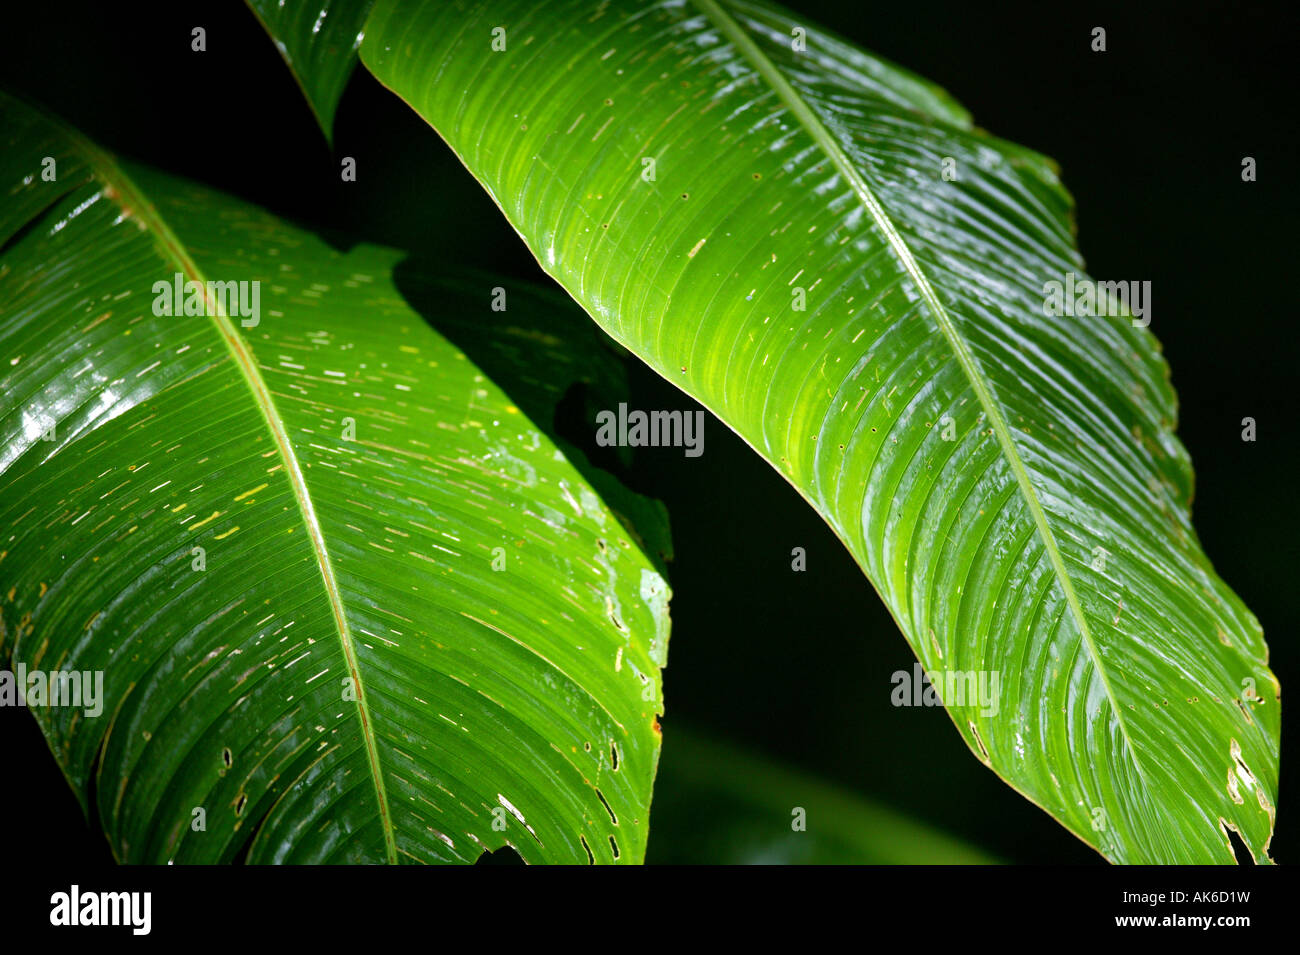 Large leaves from a Heliconia plant in the rainforest of Metropolitan park,  Republic of Panama. - Stock Image